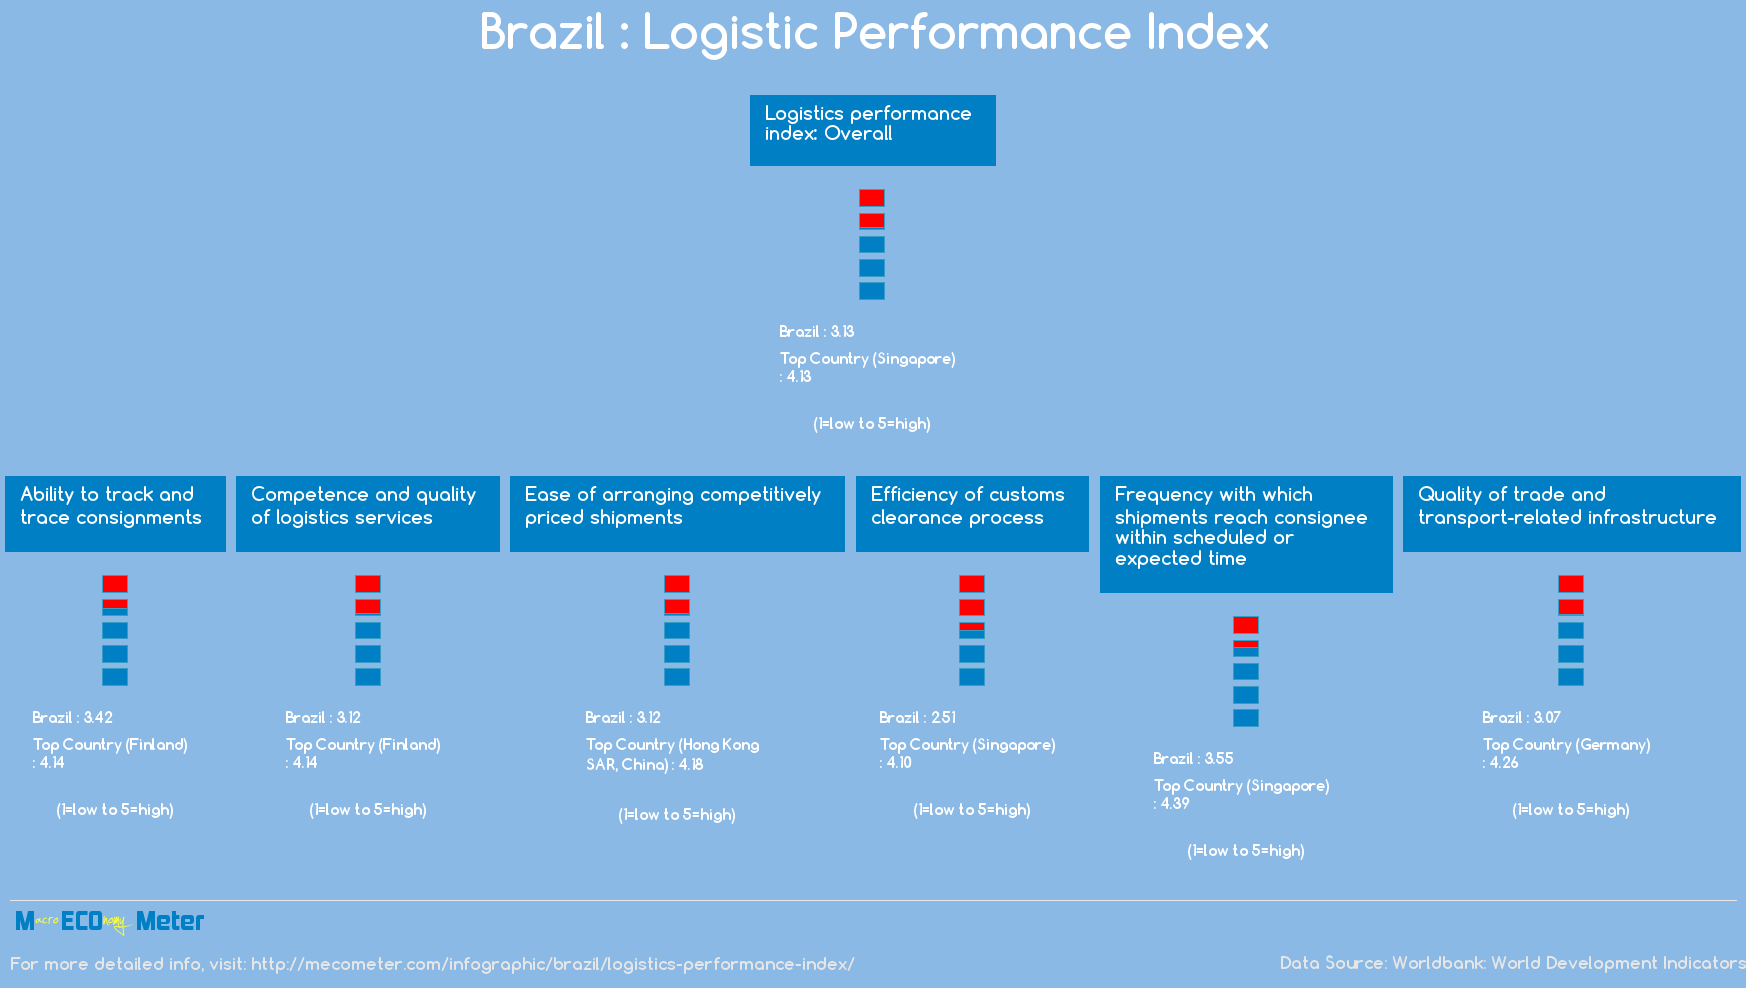 Brazil : Logistic Performance Index